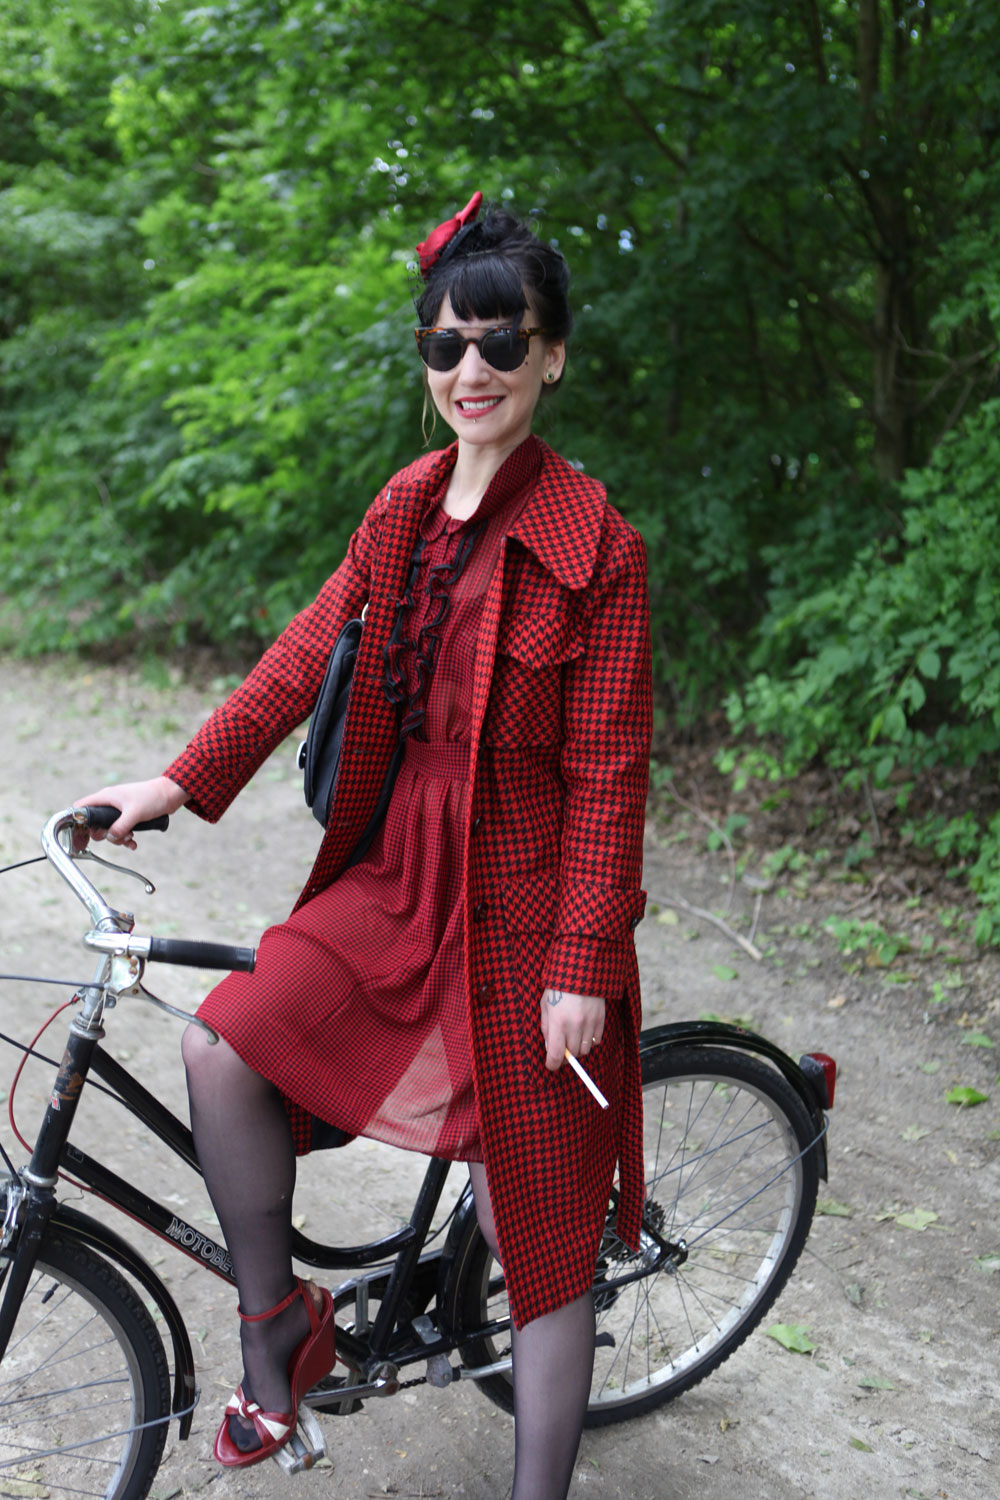 beret-baguette-paris-bike-pretty-street-style-bike-fashion-photo-Kelly-Miller-17